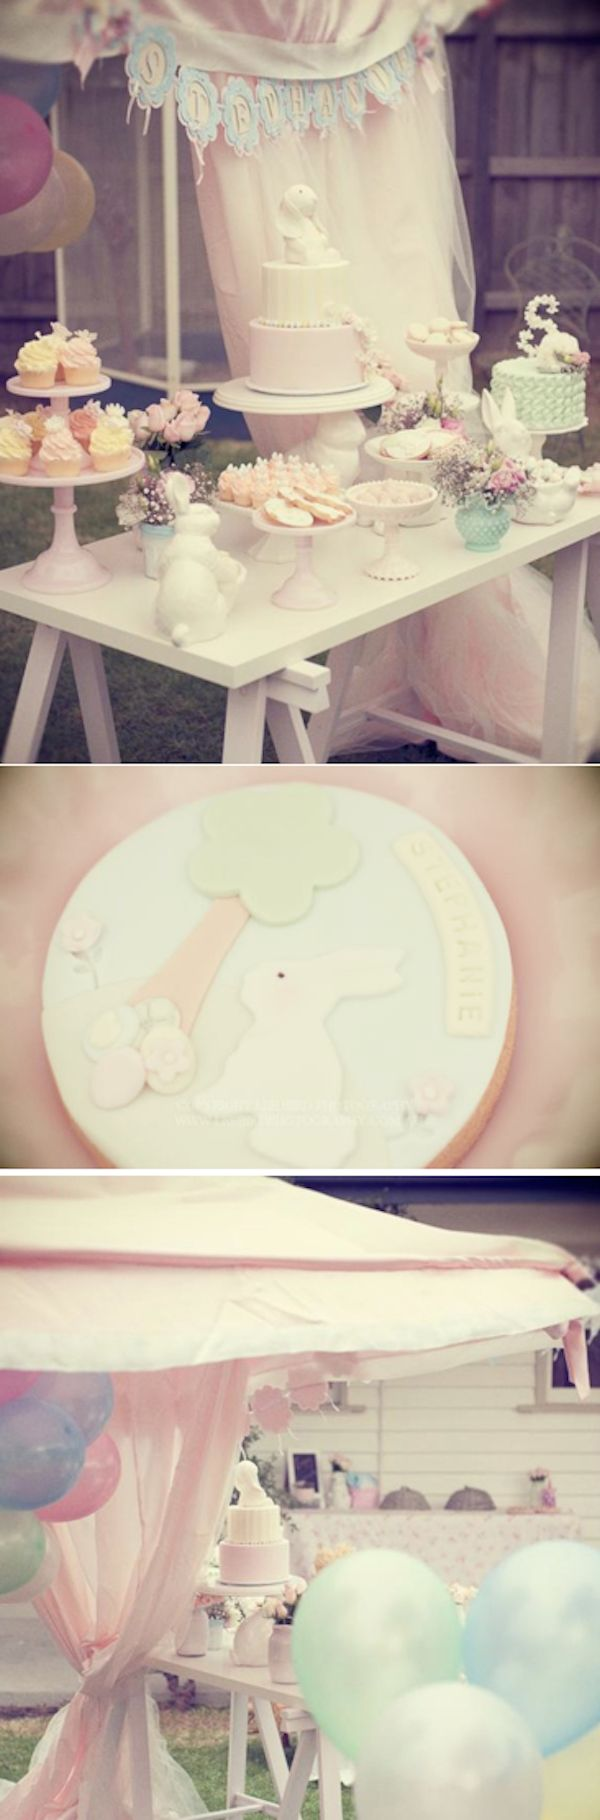 A Very Bunny 1st Birthday Party full of the cutest ideas ever! Via Karas Party Ideas KarasPartyIdeas.com Adorable spring and Easter party ideas, too!